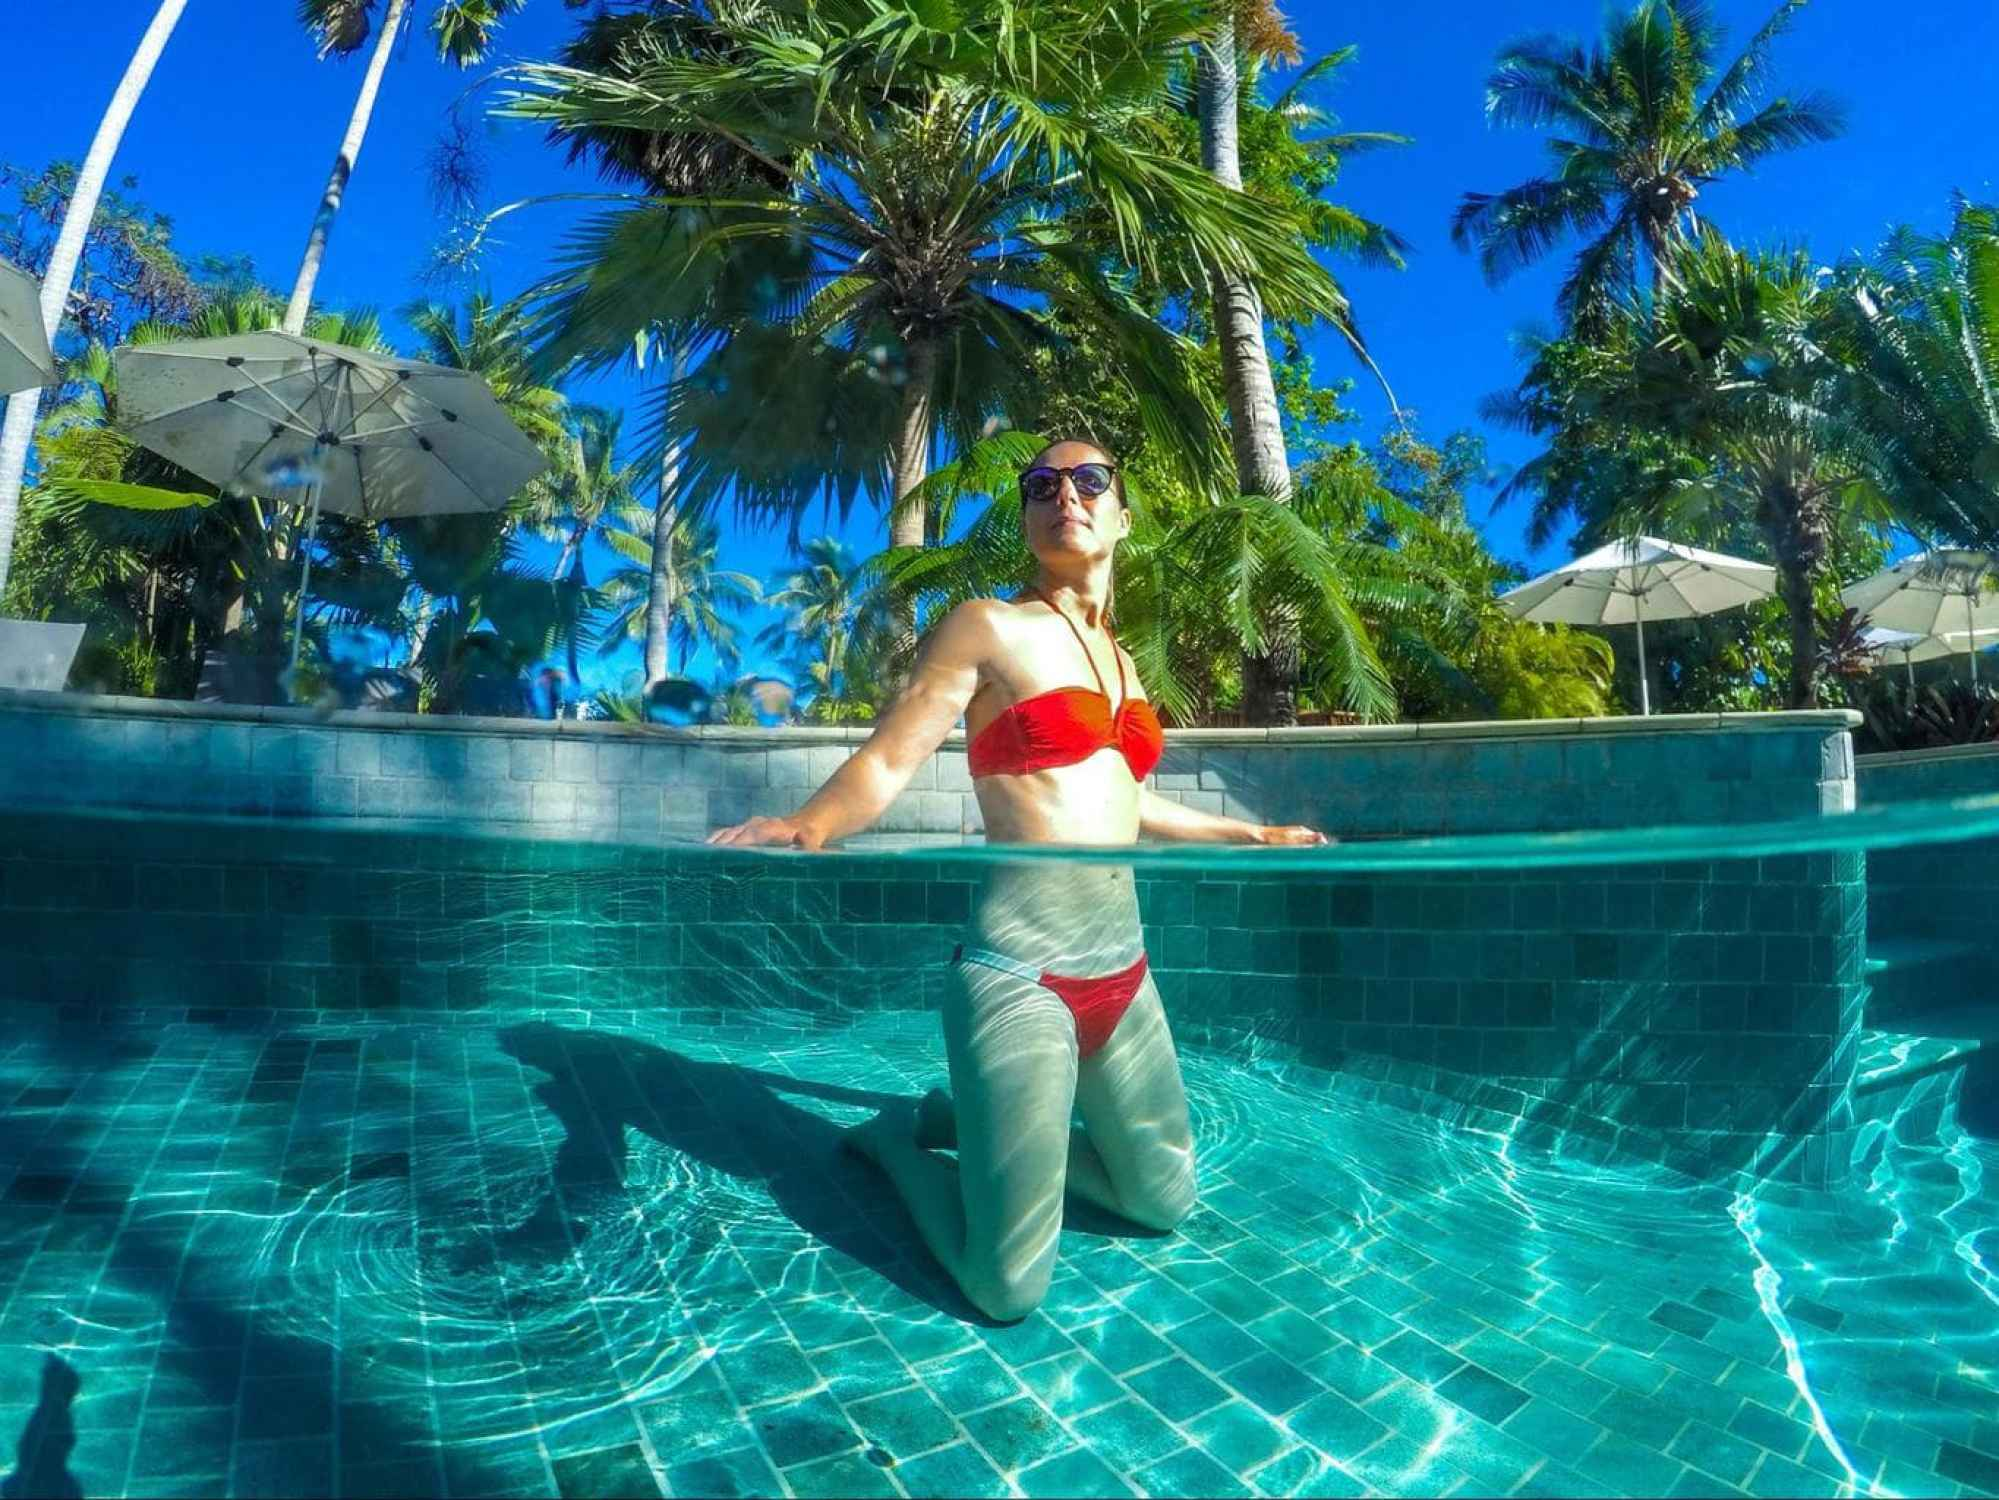 Swimming in the adults friendly pool at Castaway Island